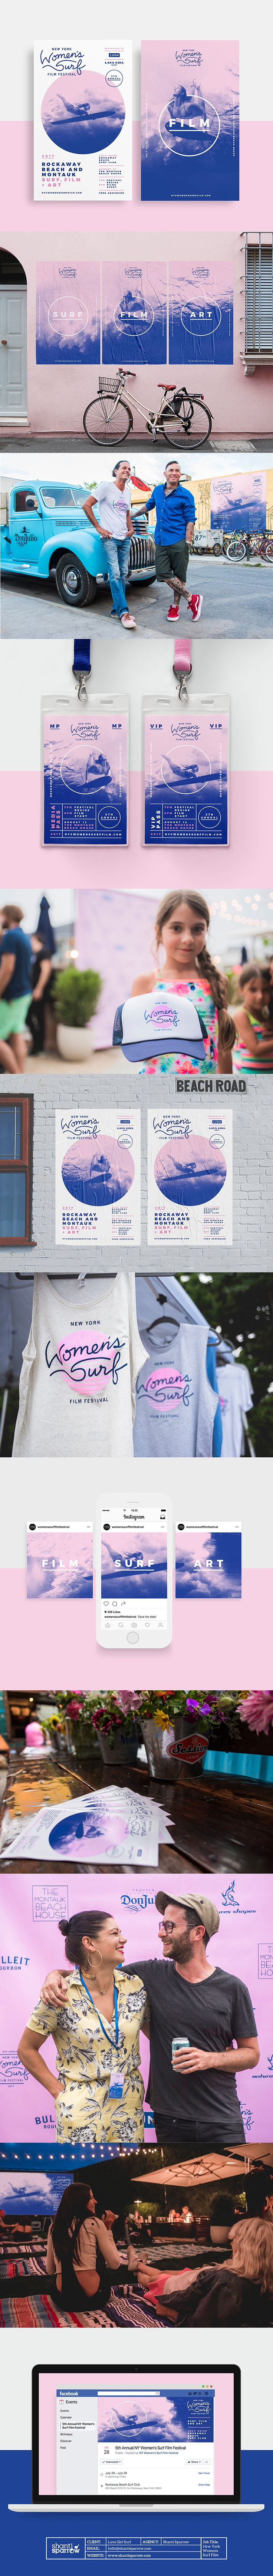 New York Women's Surf Film Festival Branding by Shanti Sparrow